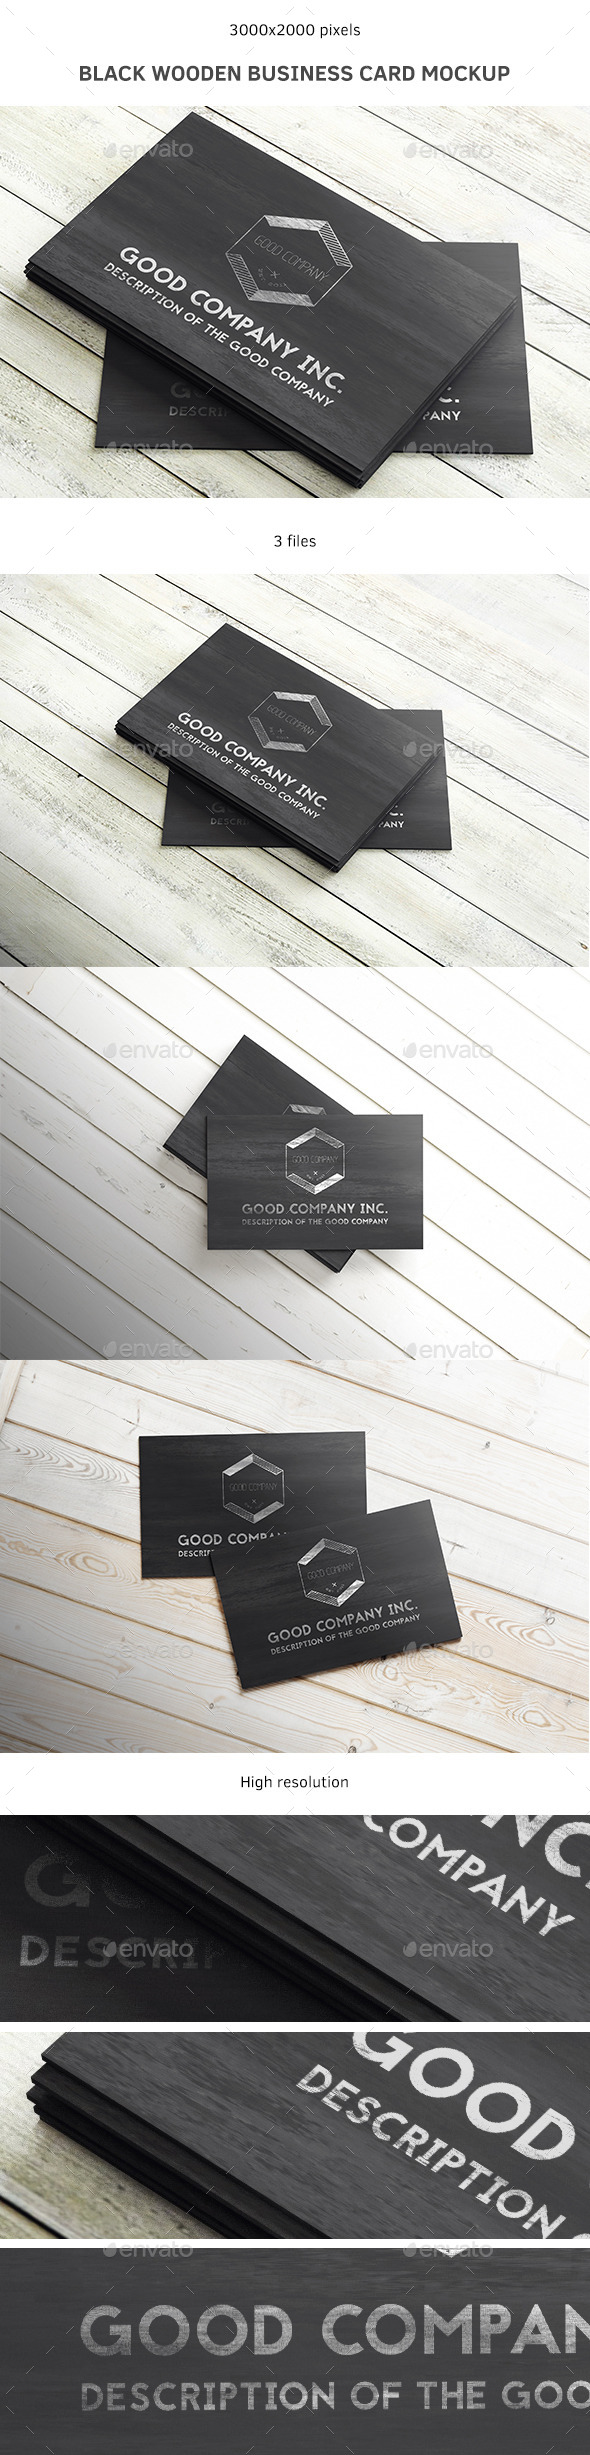 Black Wooden Business Card Mockup - Business Cards Print